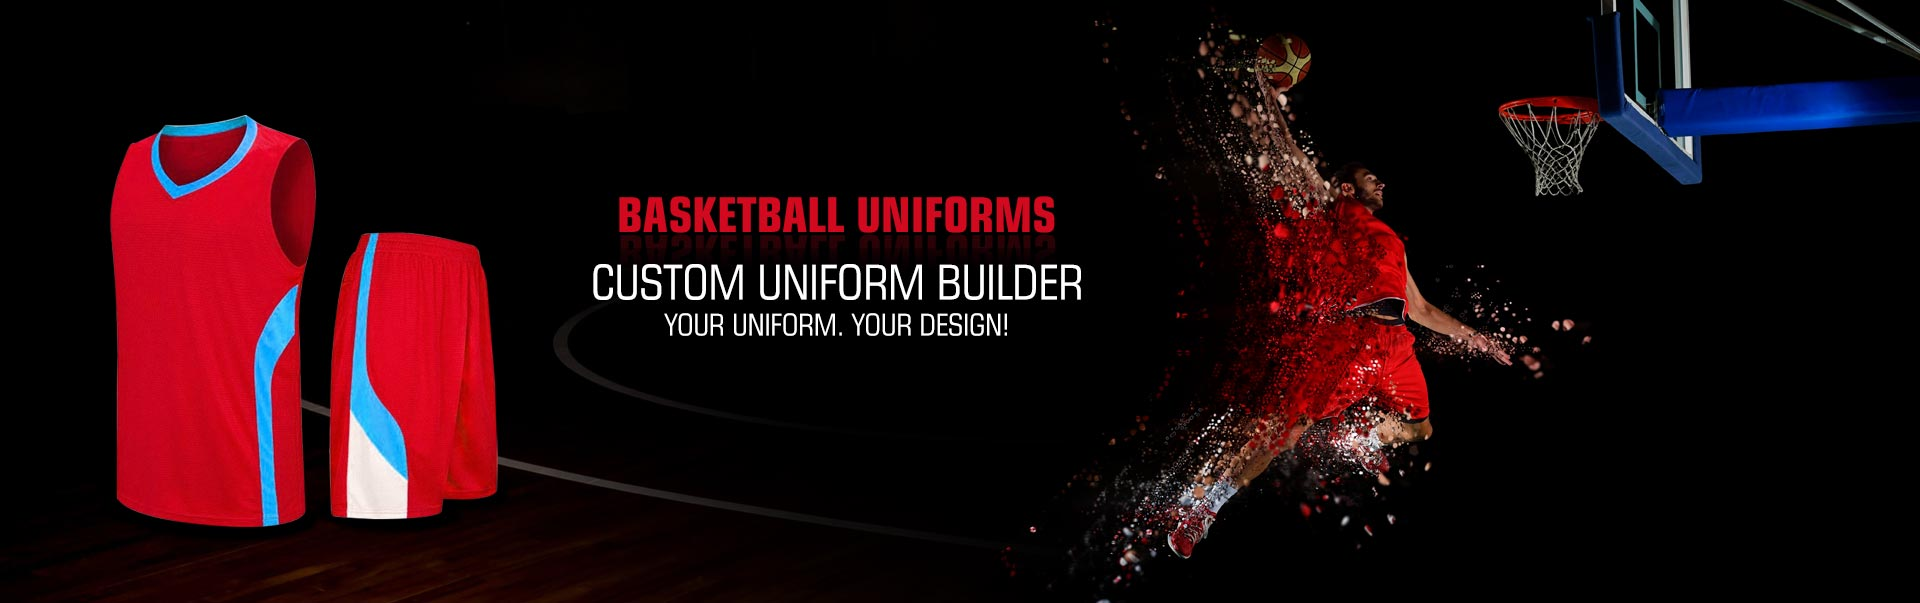 Basketball Uniforms Wholesaler, Suppliers in Ballarat